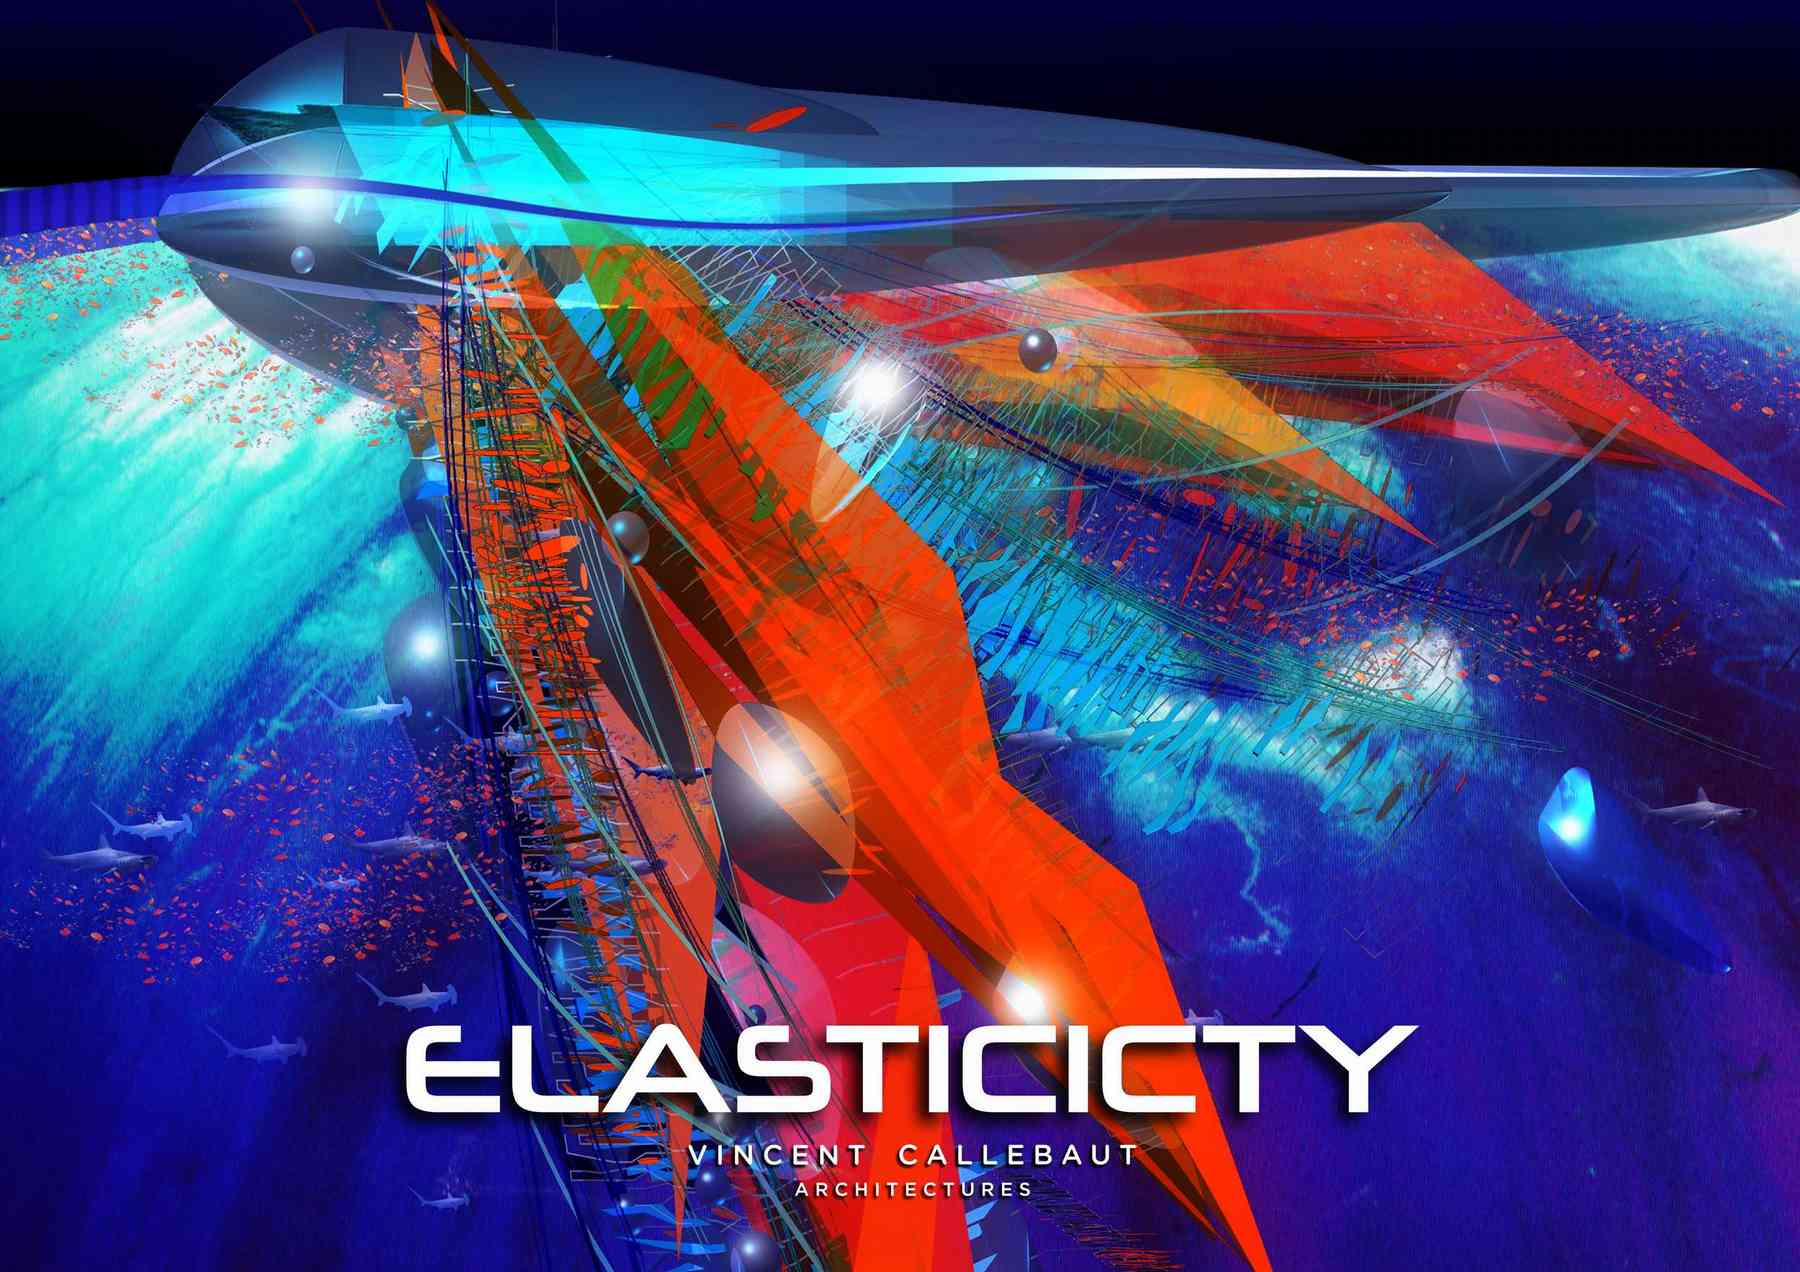 ELASTICITY, AN UNDERWATER CITY